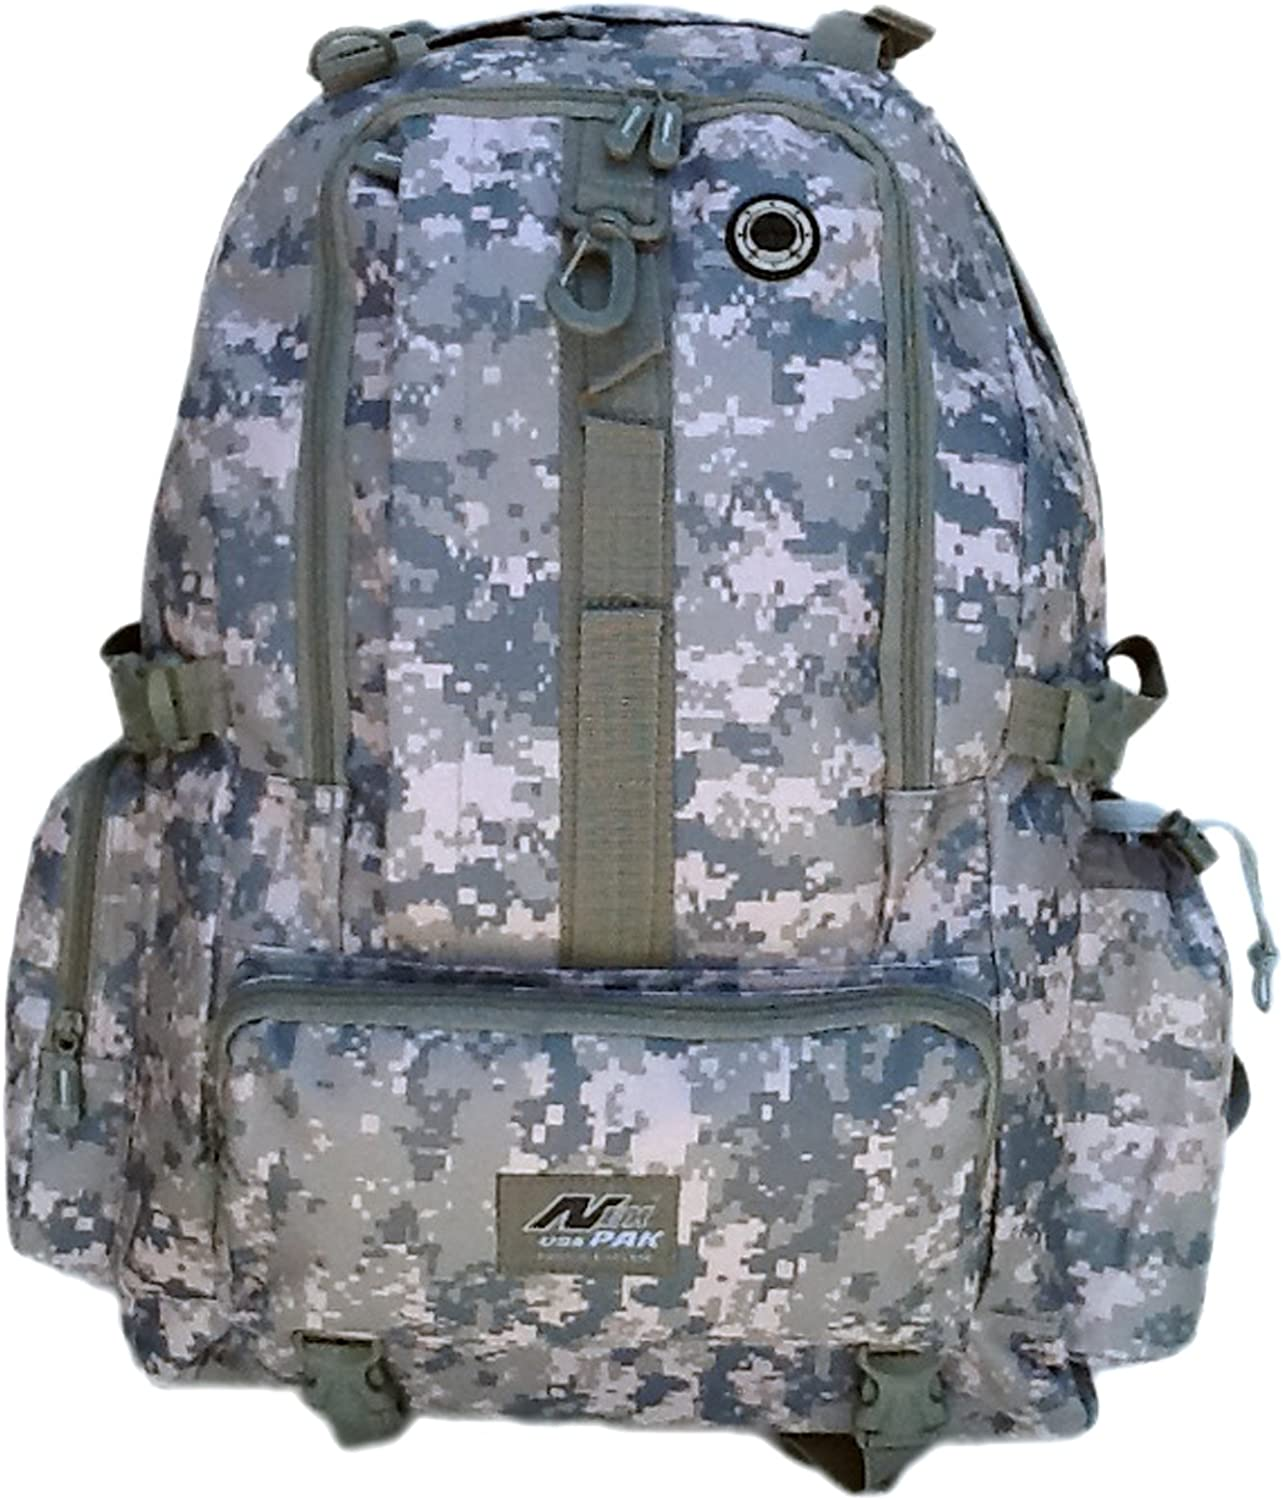 Nexpak 21 2800cu. in. Great Hunting Camping Hiking Backpack DP021 DM Digital Camouflage